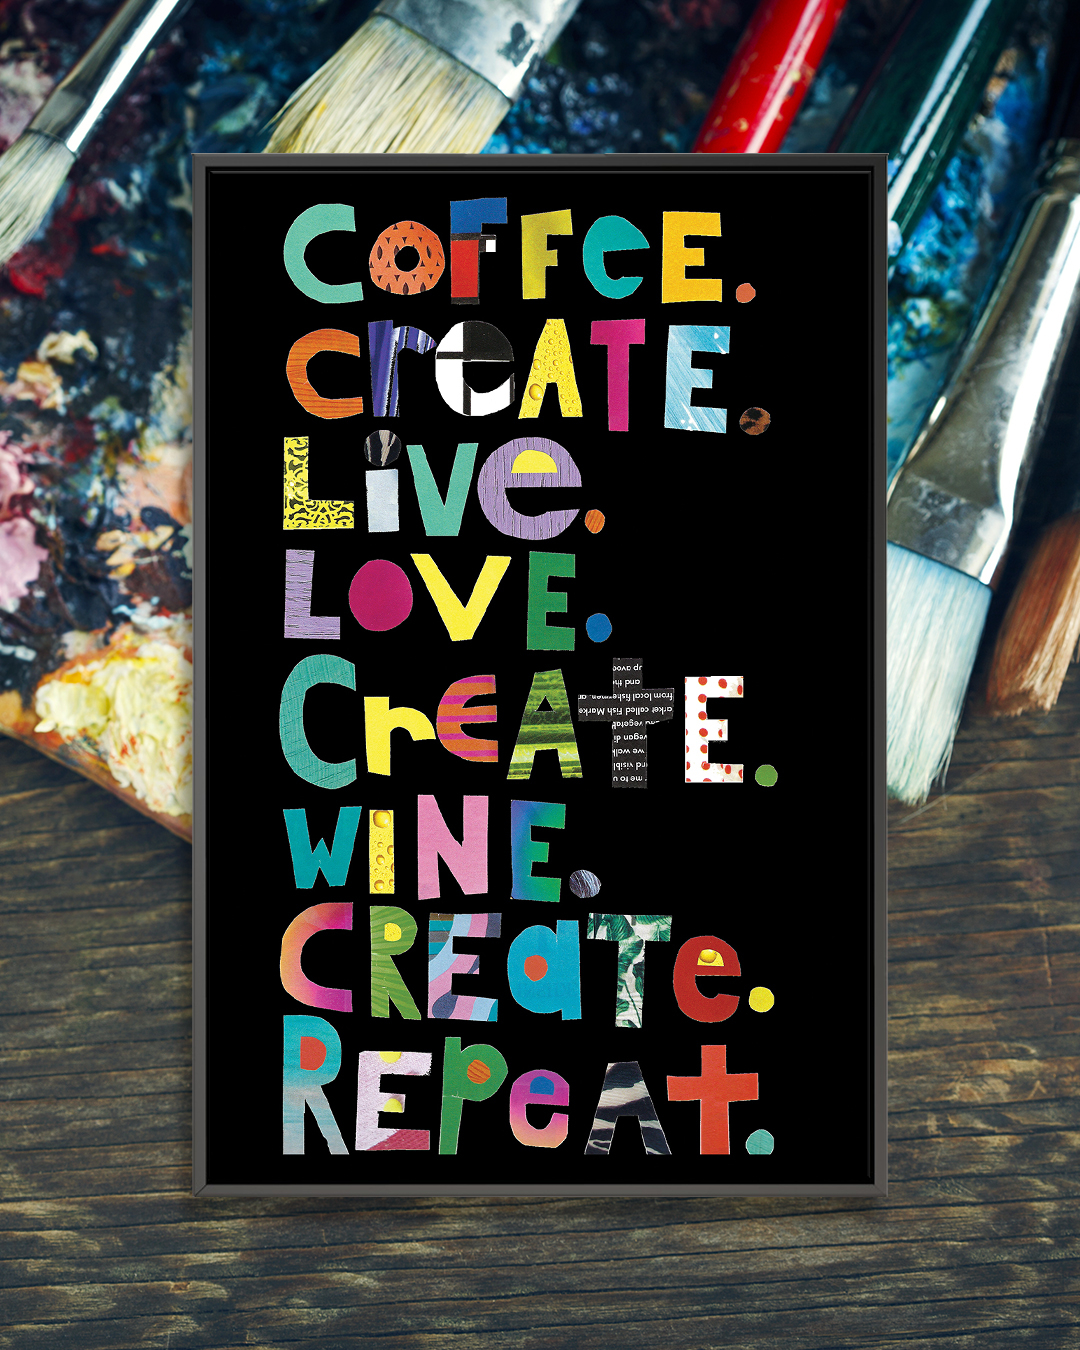 """""""Create"""" by Jen Bucheli shows the words 'coffee.create.live.love.create.wine.create.repeat.' in various colors against a black background."""